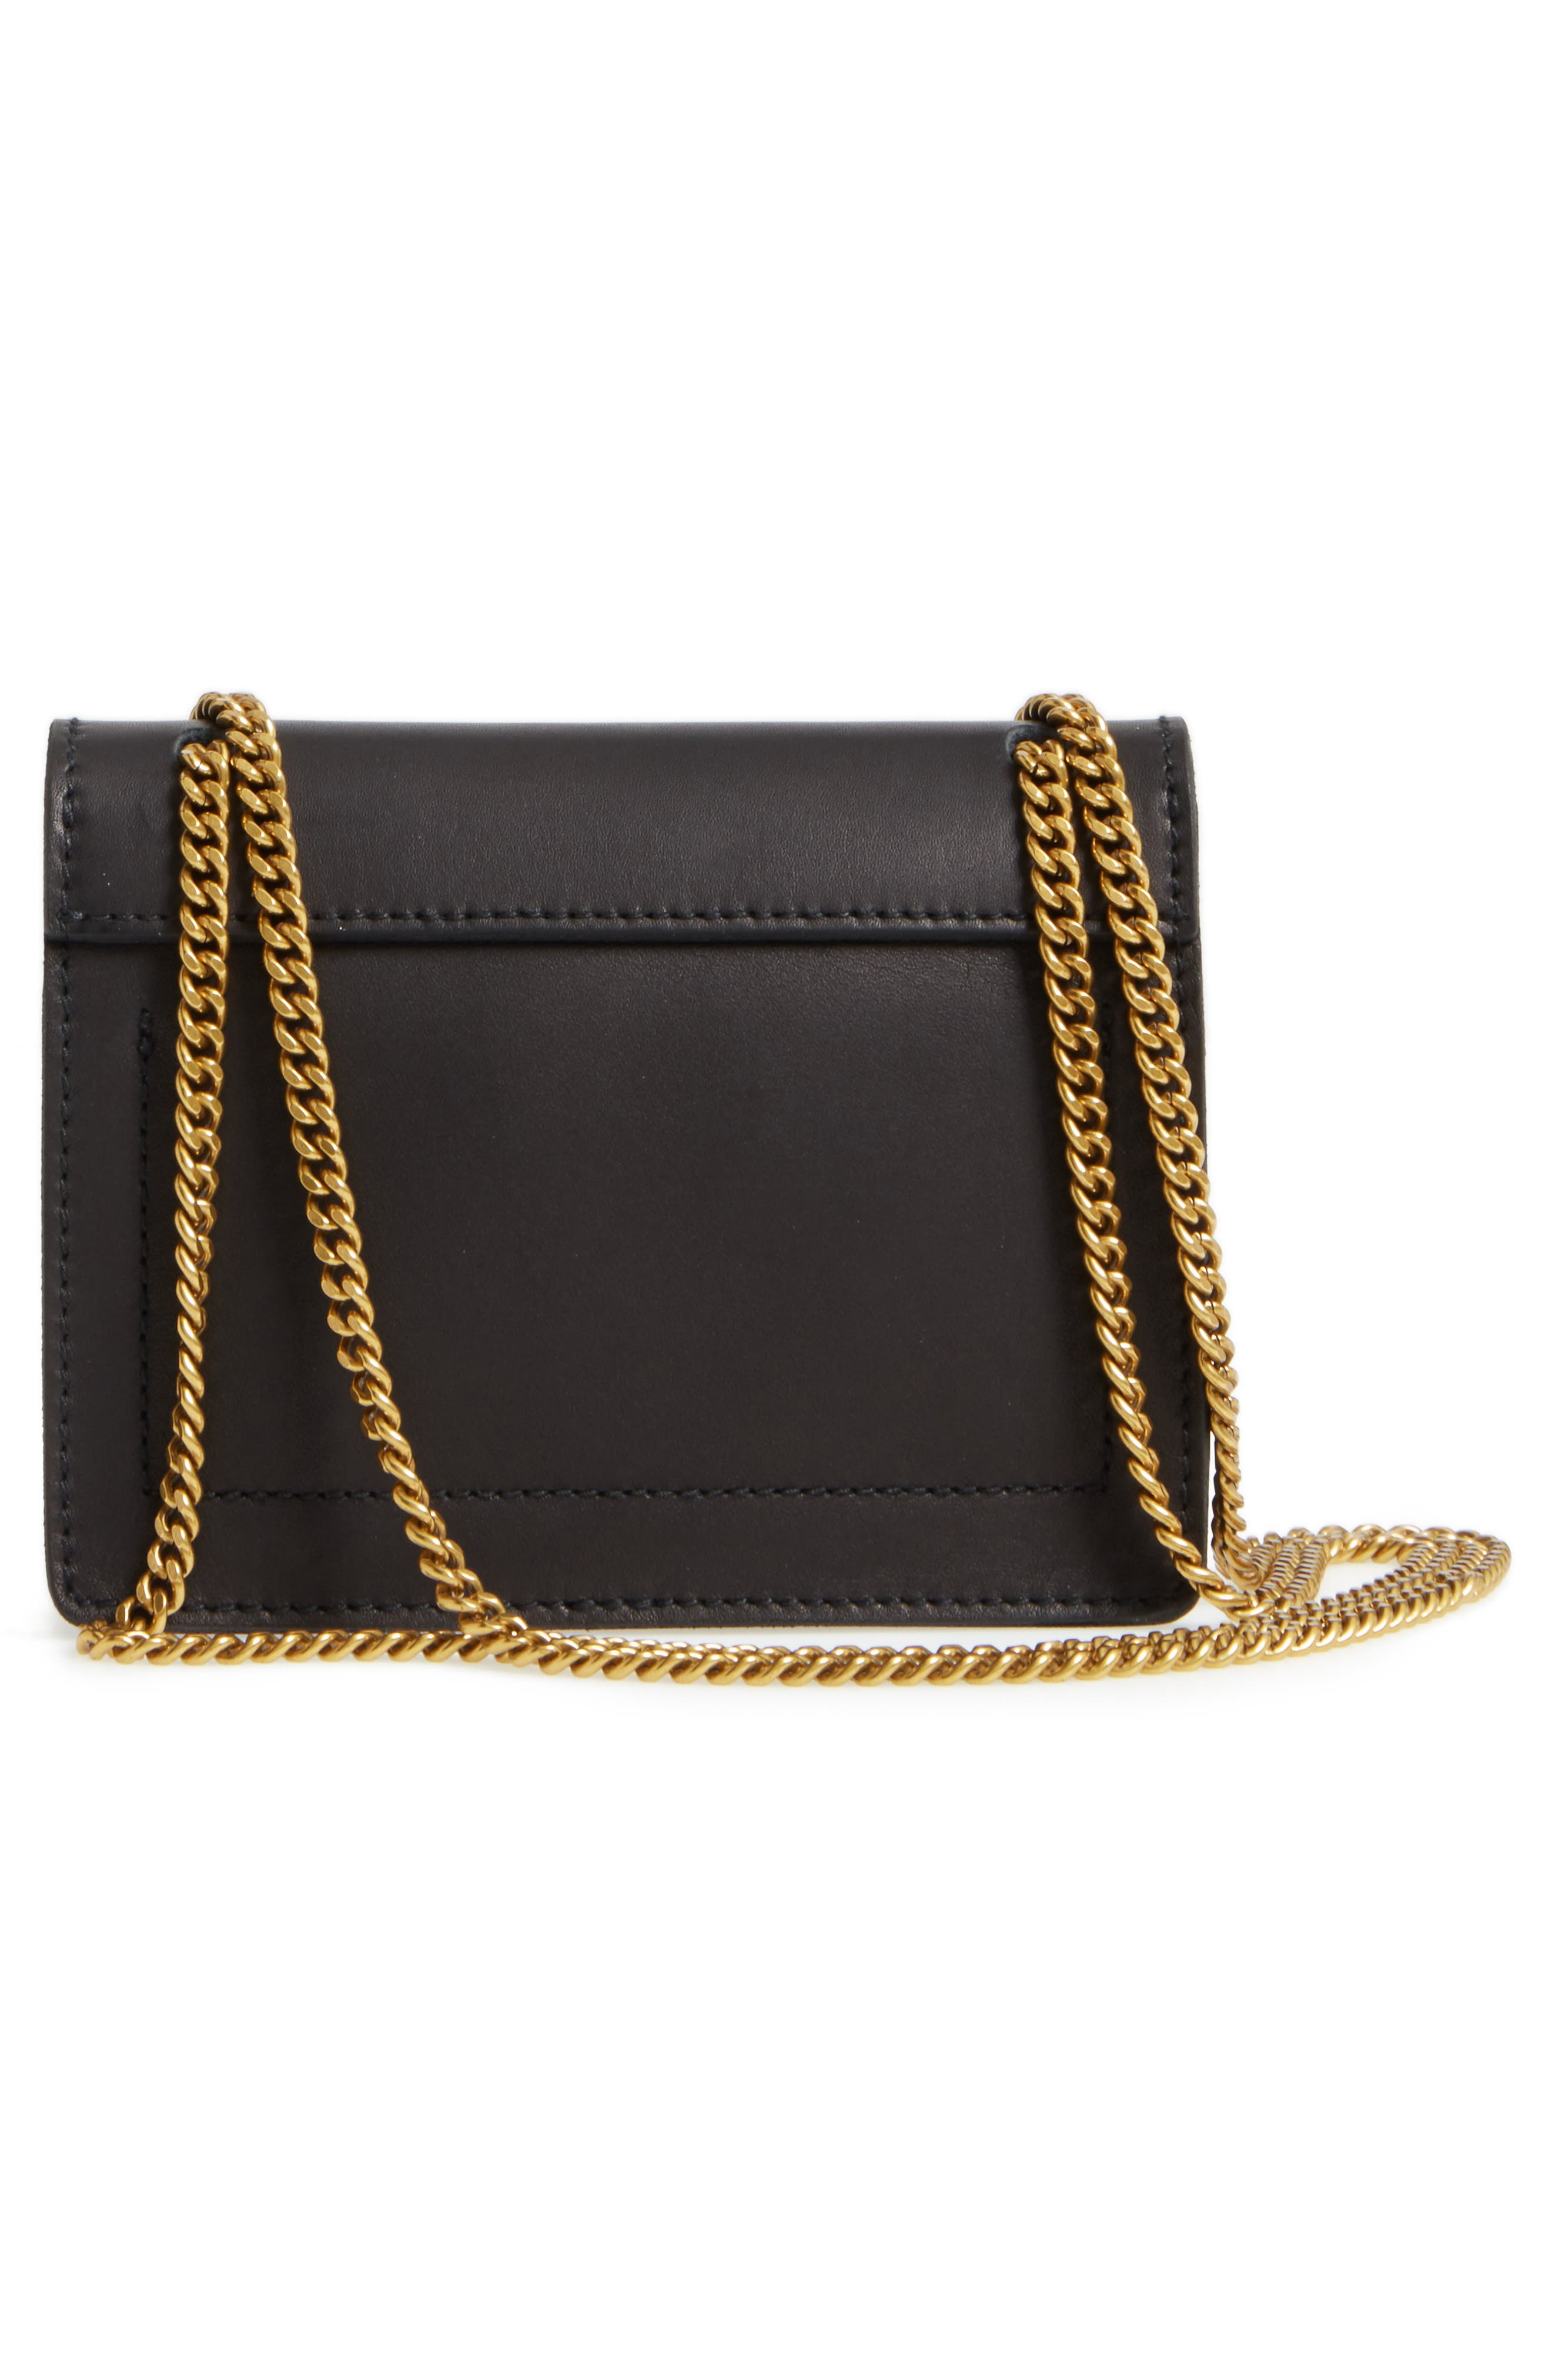 Chain Leather Crossbody Bag,                             Alternate thumbnail 3, color,                             001